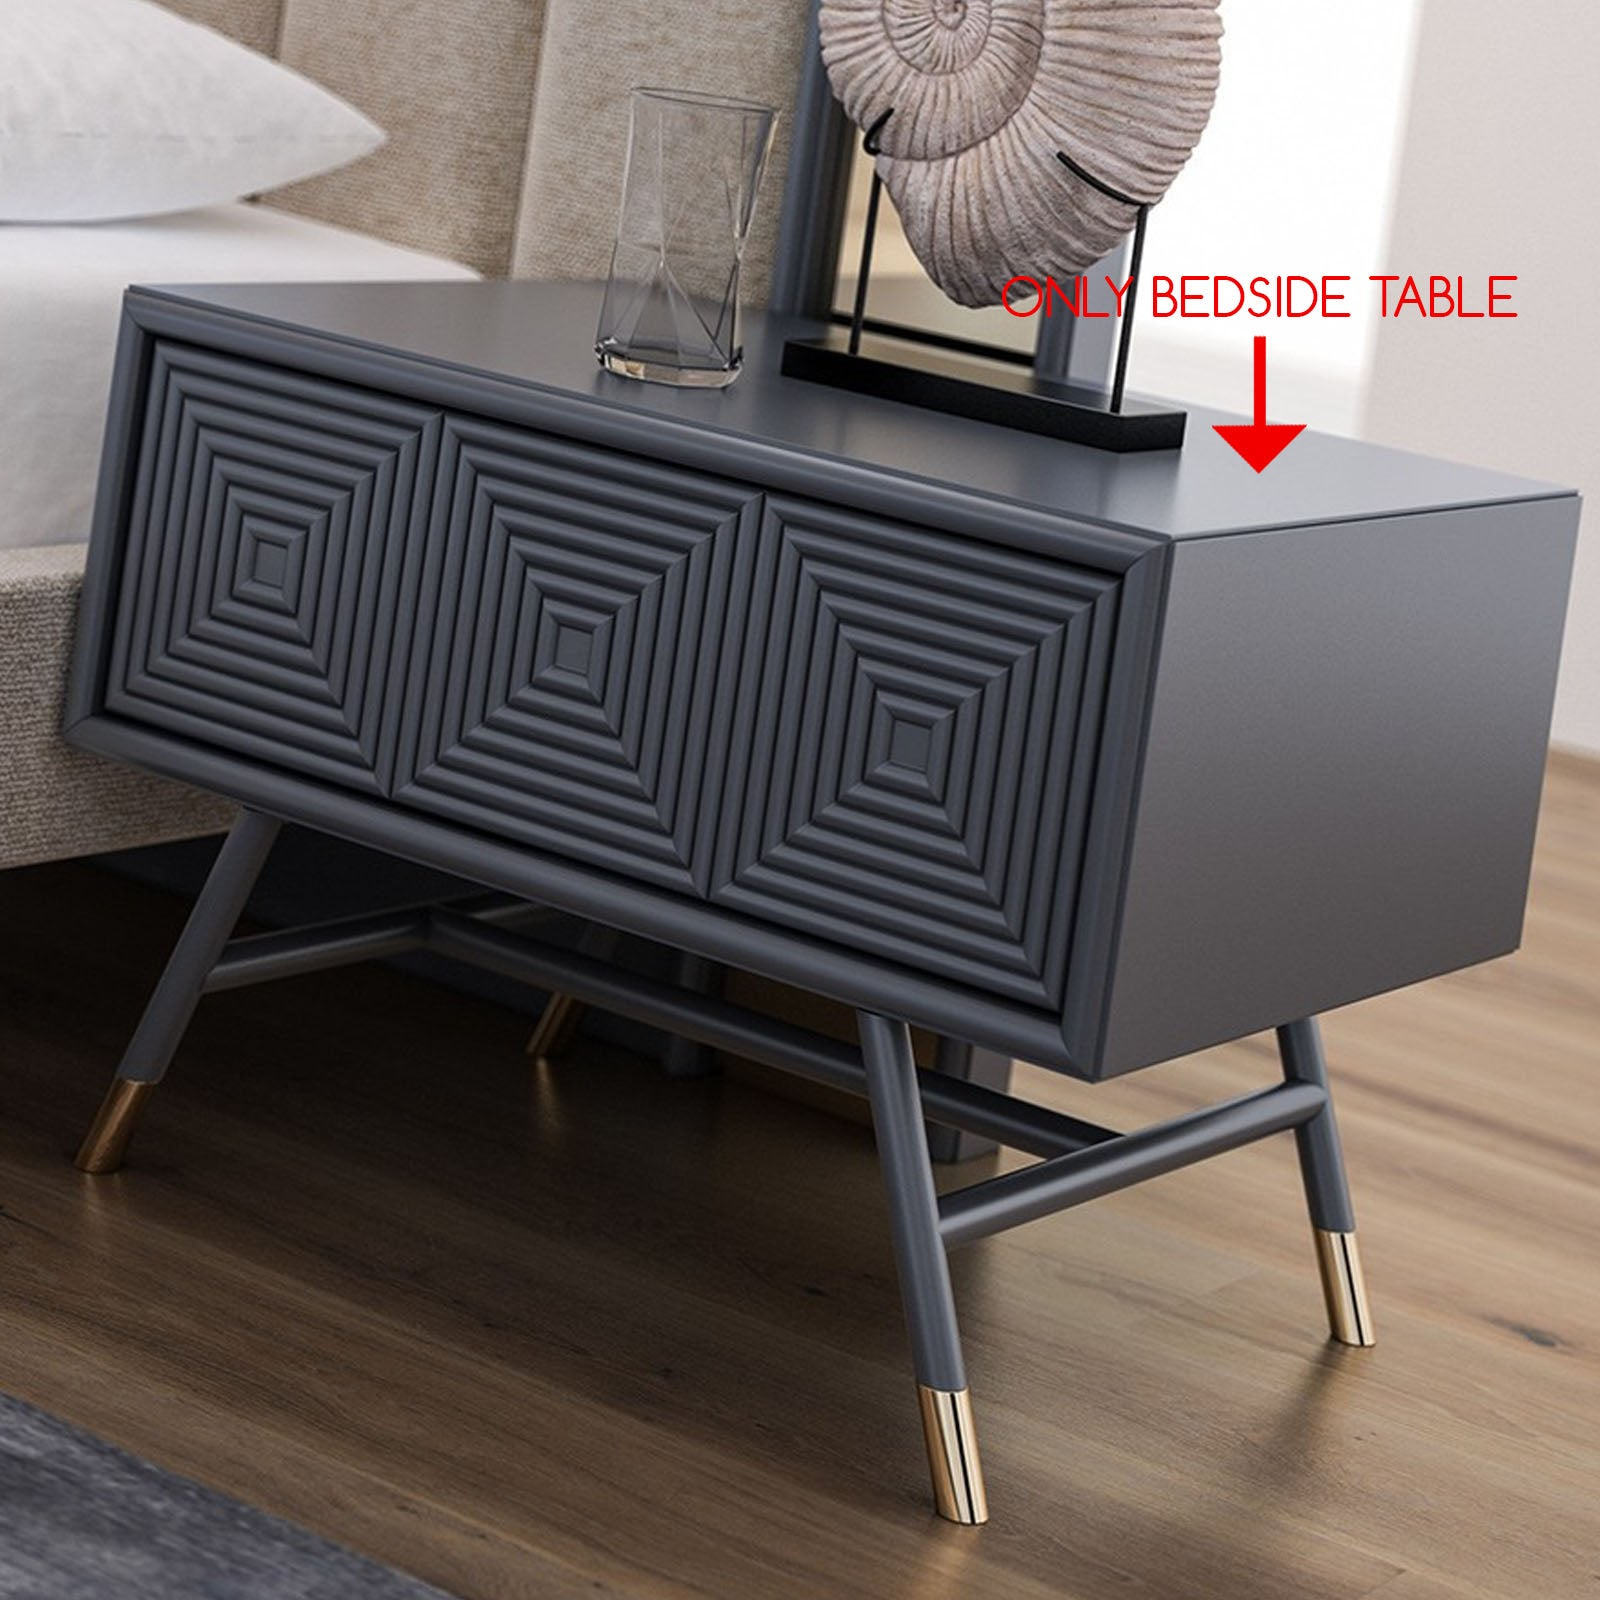 2x Vela BEDSIDE TABLE  Vela009-G-BEDSIDETABLE